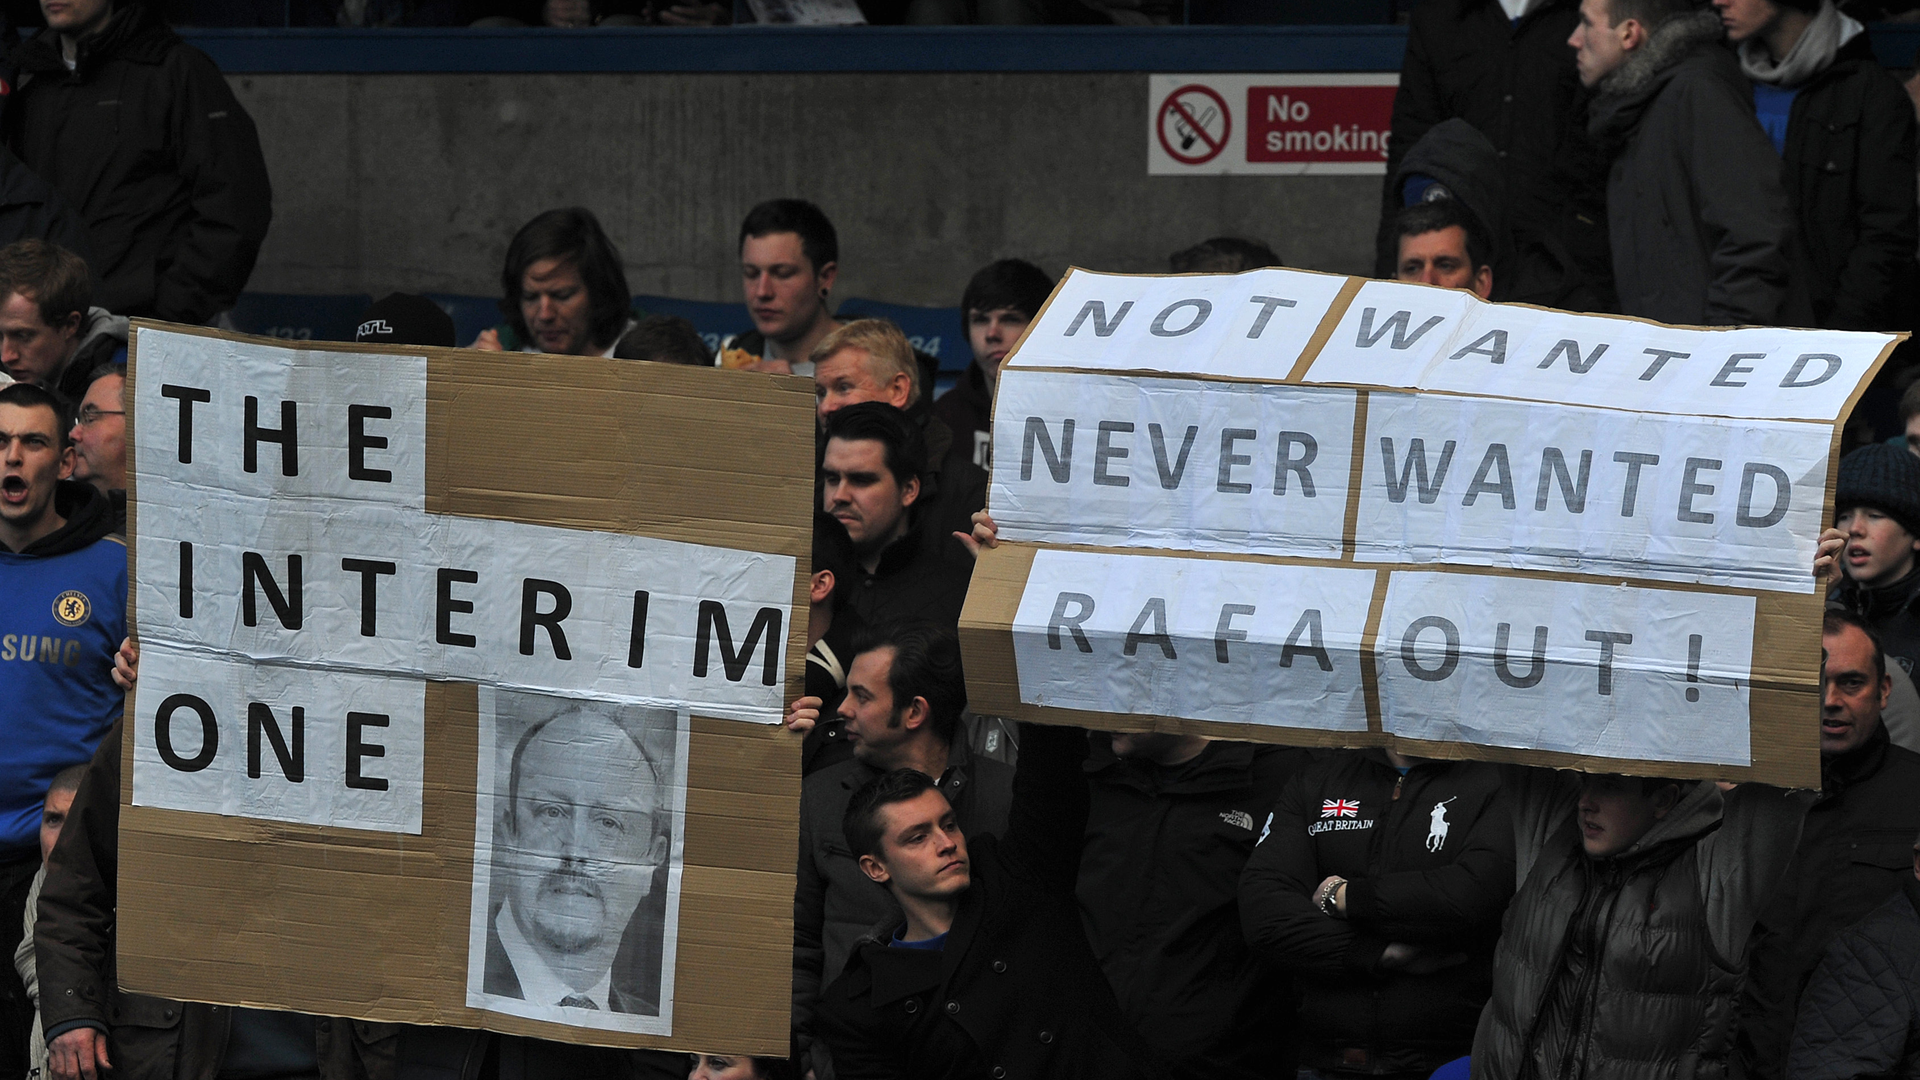 Rafa Benitez banner at Stamford Bridge